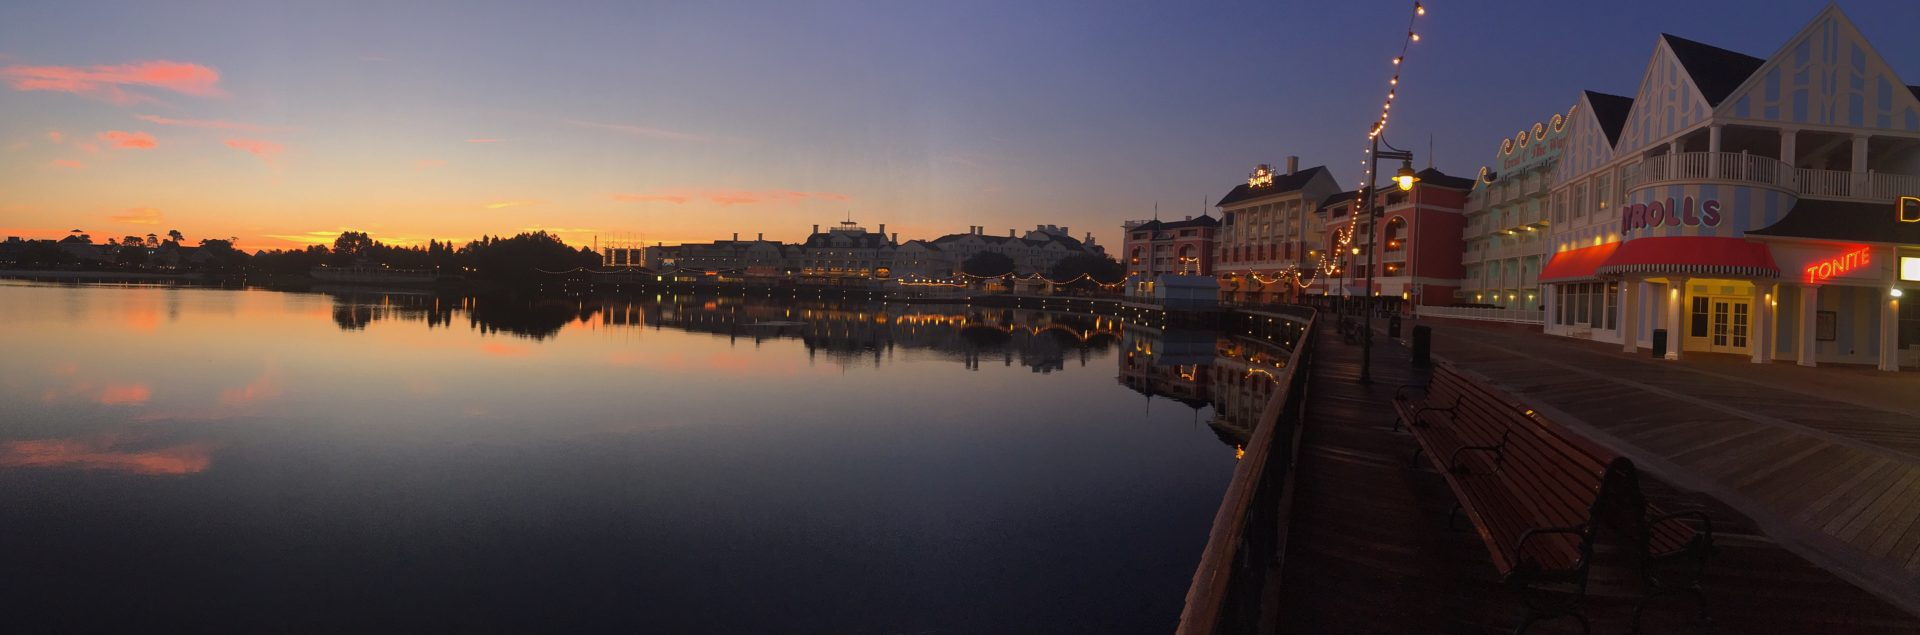 Disney World BoardWalk Panorama at sunset